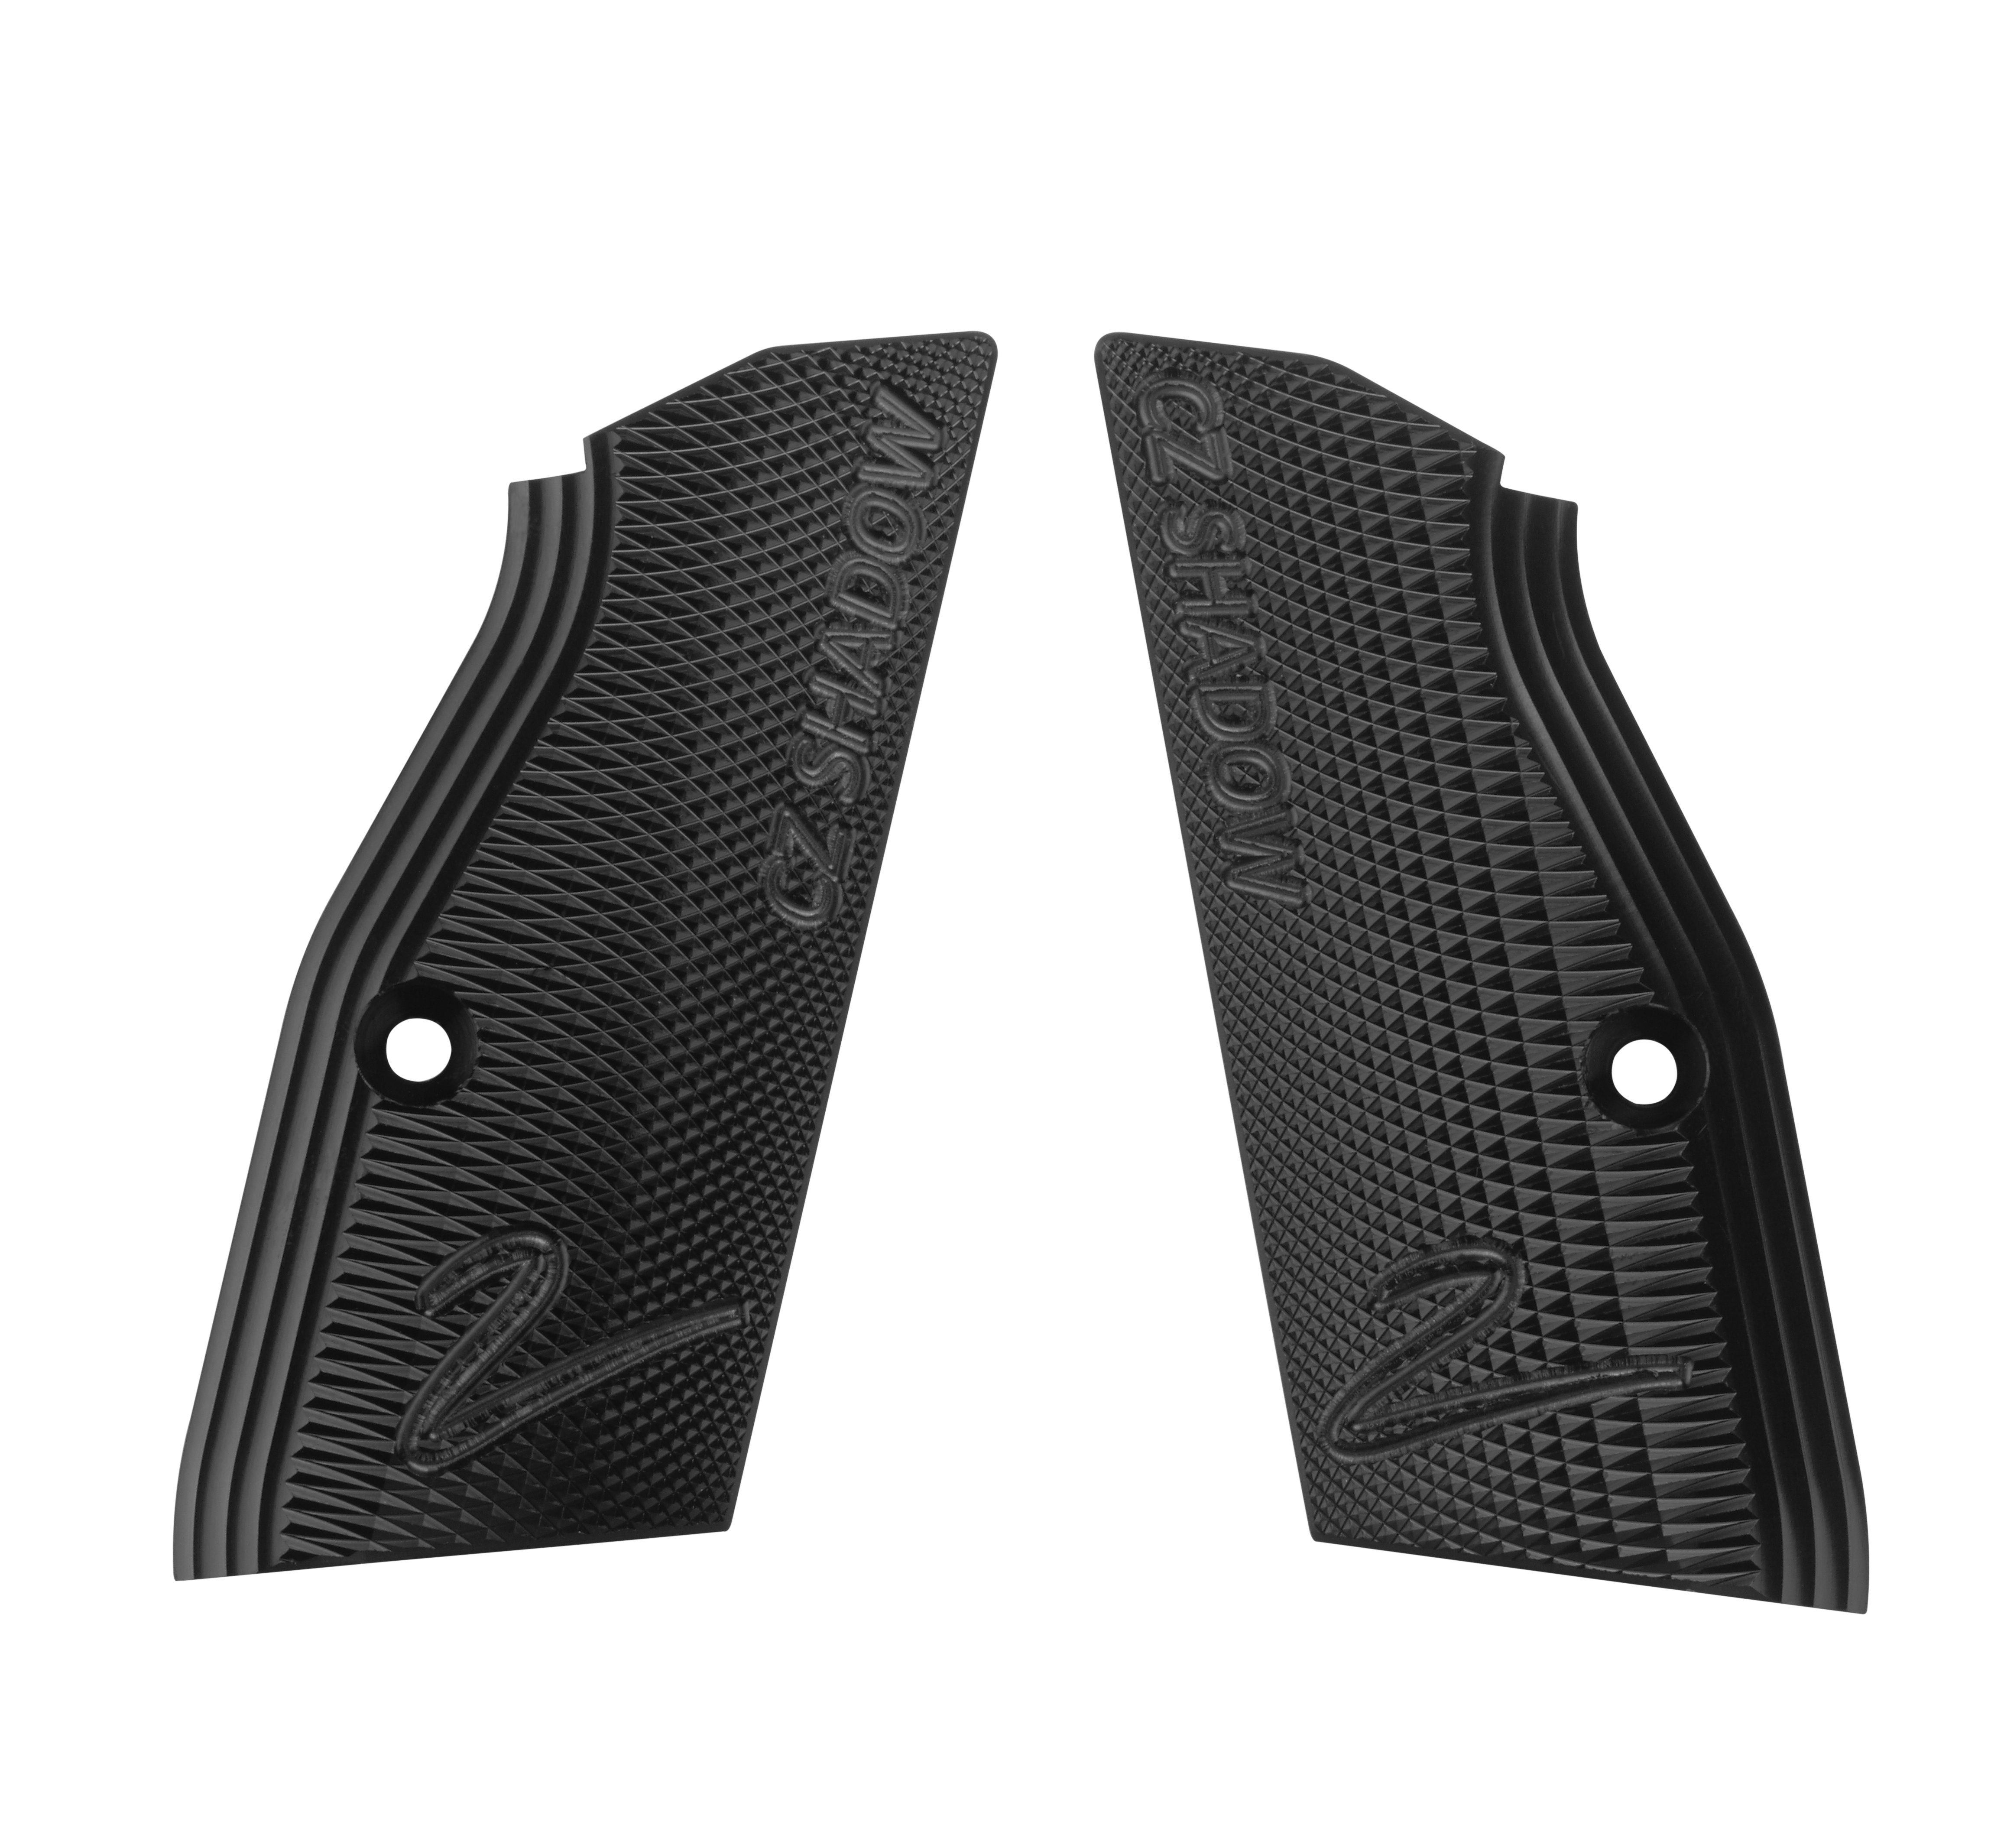 CZ SHADOW 2 Premium Hard Elox Grips without Funnel - Black - CZUB®